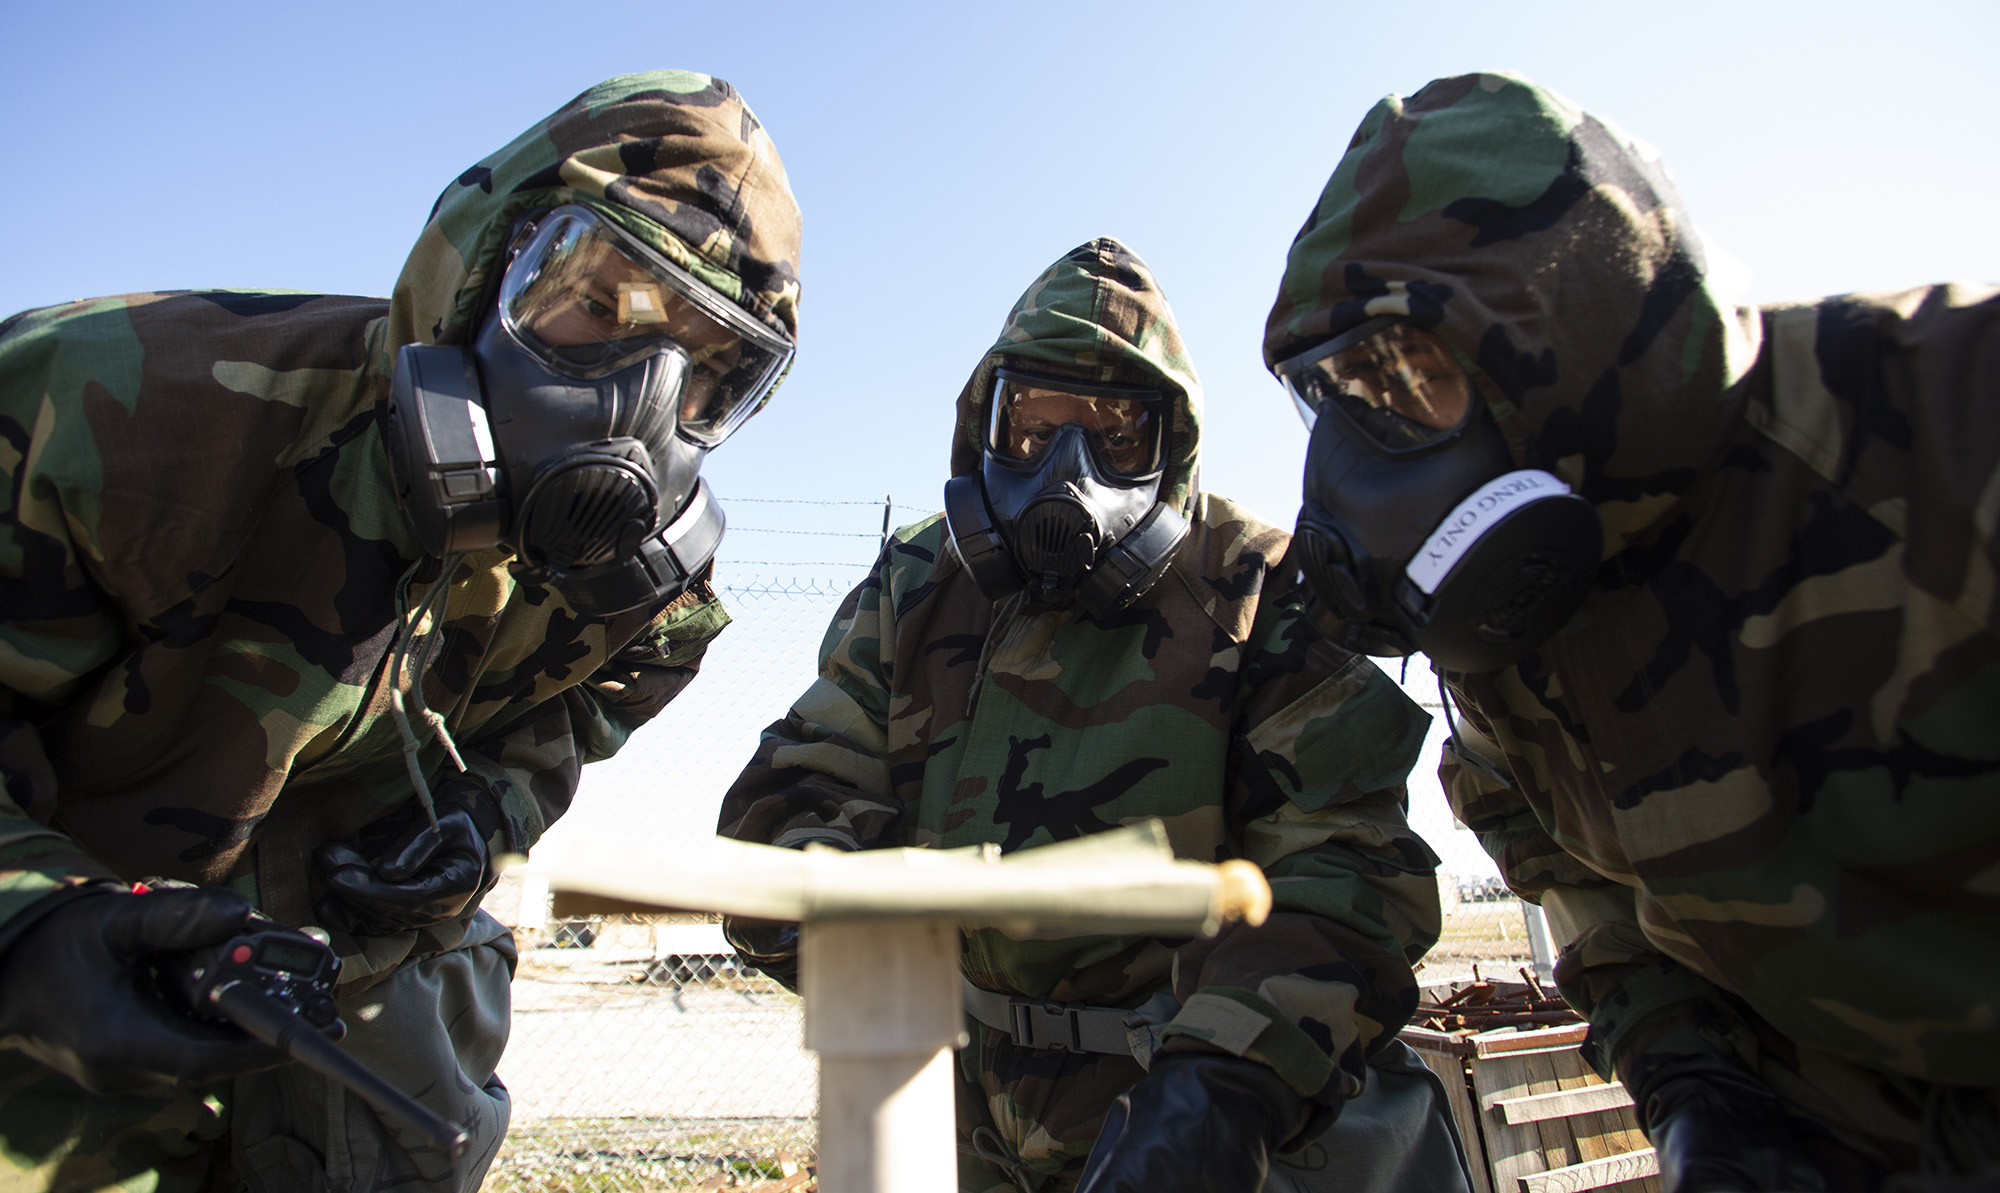 U.S. airmen with the 163d Attack Wing, California Air National Guard evaluate a reaction found on chemical detection paper during training on Jan. 11, 2020, at March Air Reserve Base, Calif. (Staff Sgt. Crystal Housman/Air National Guard)